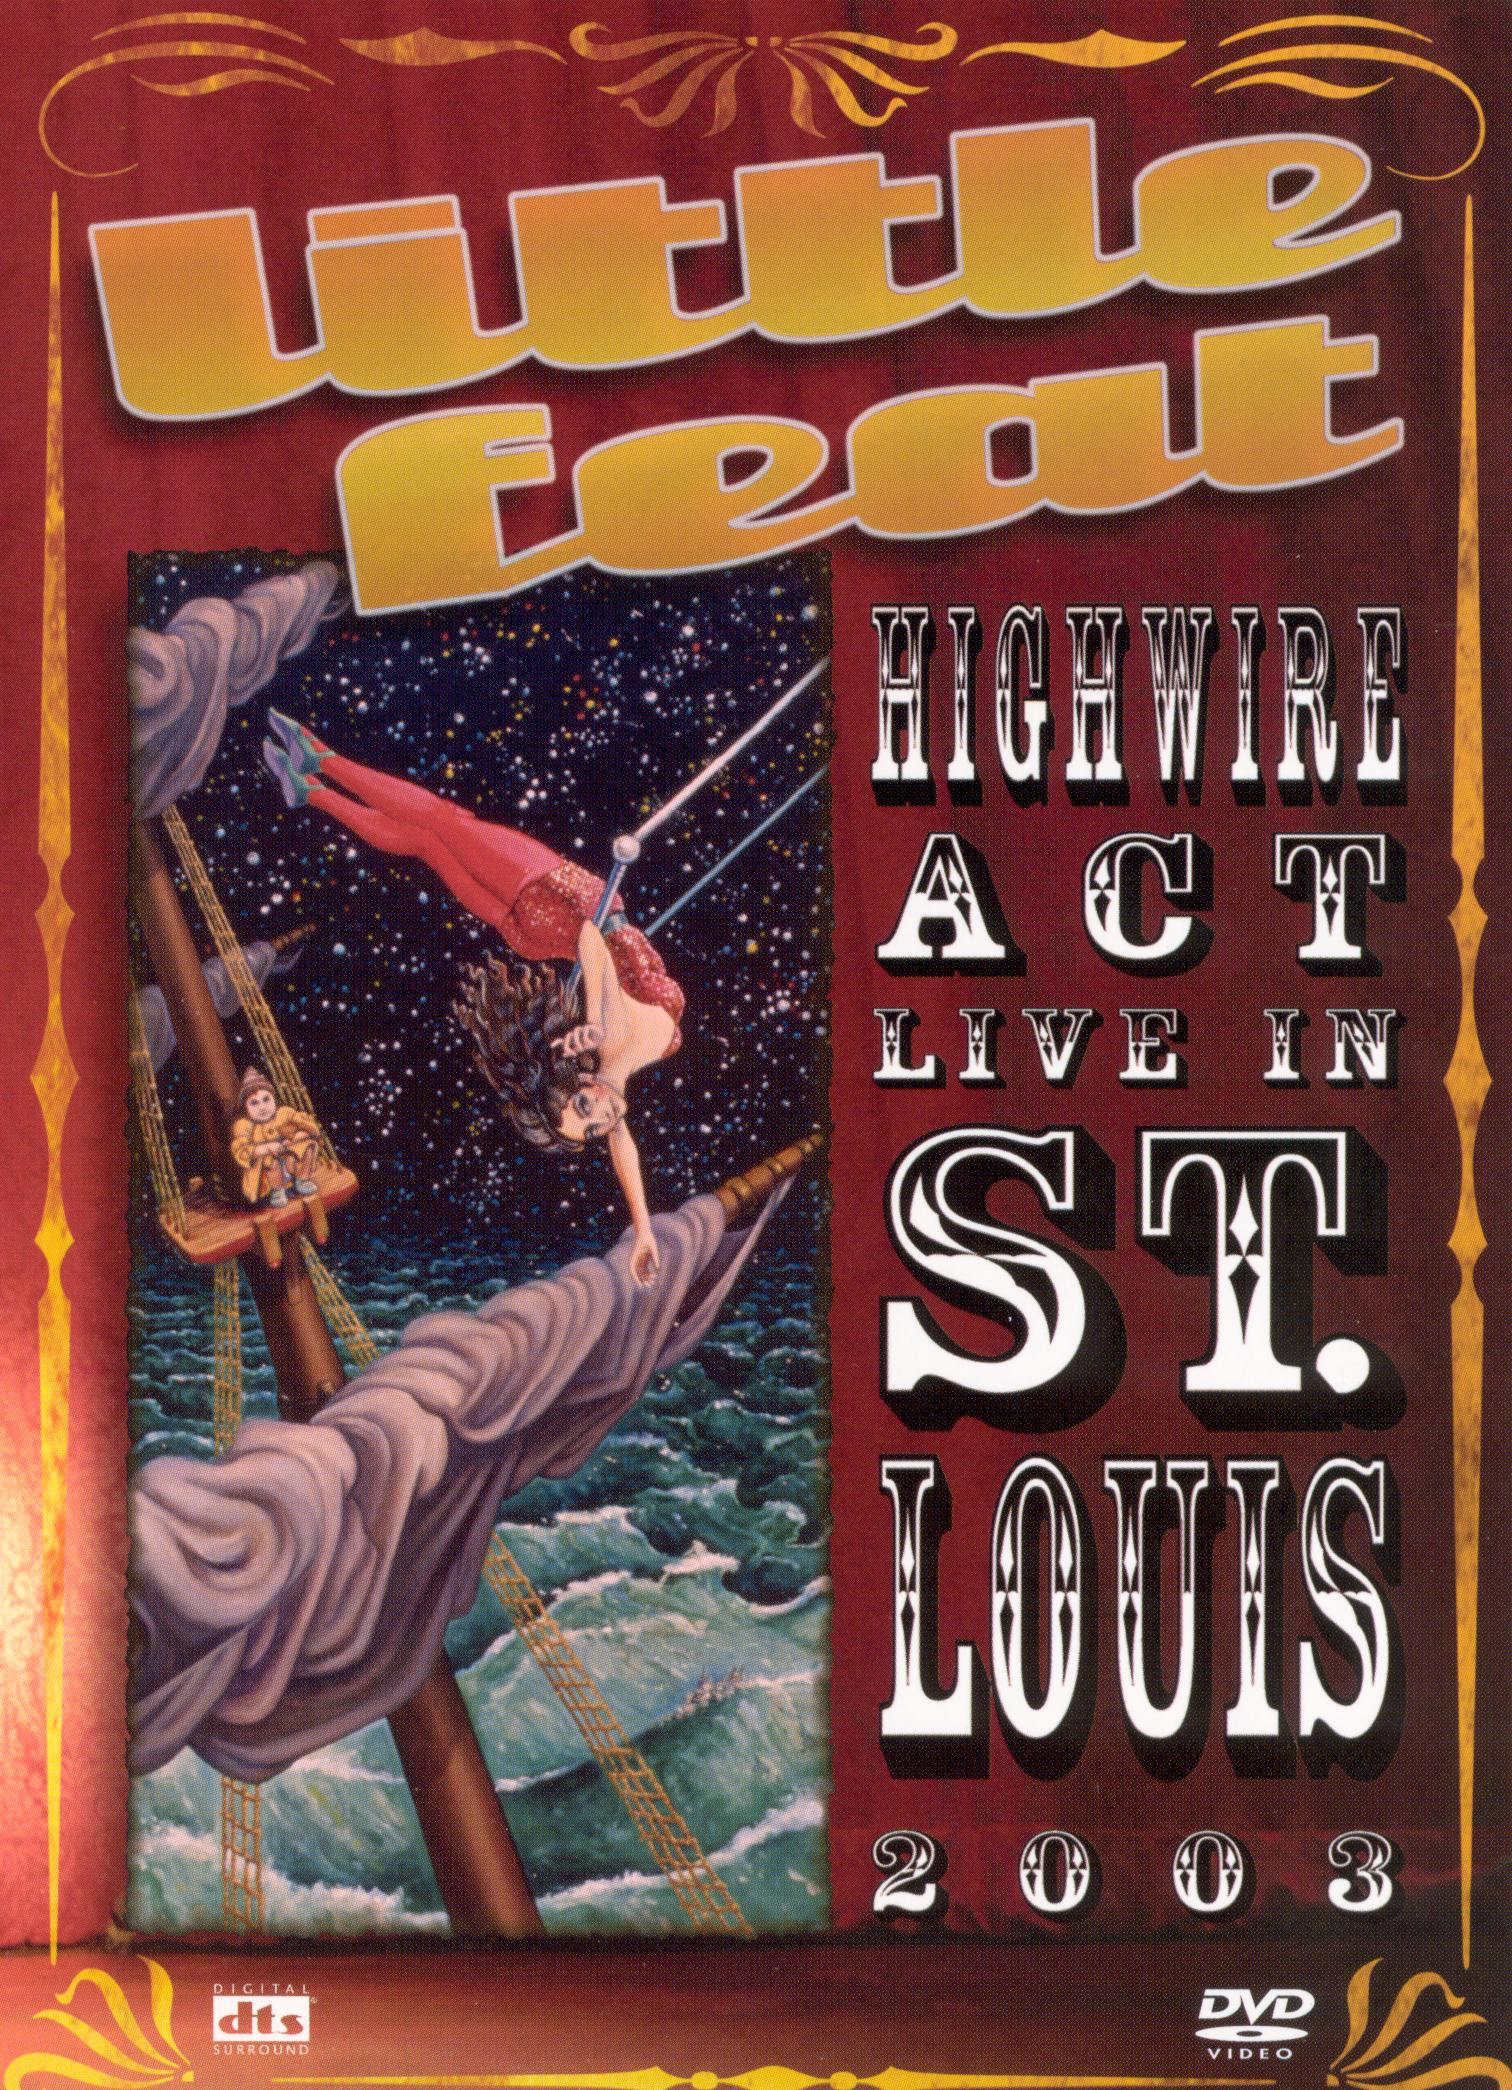 Little Feat: Highwire Act Live in St. Louis 2003